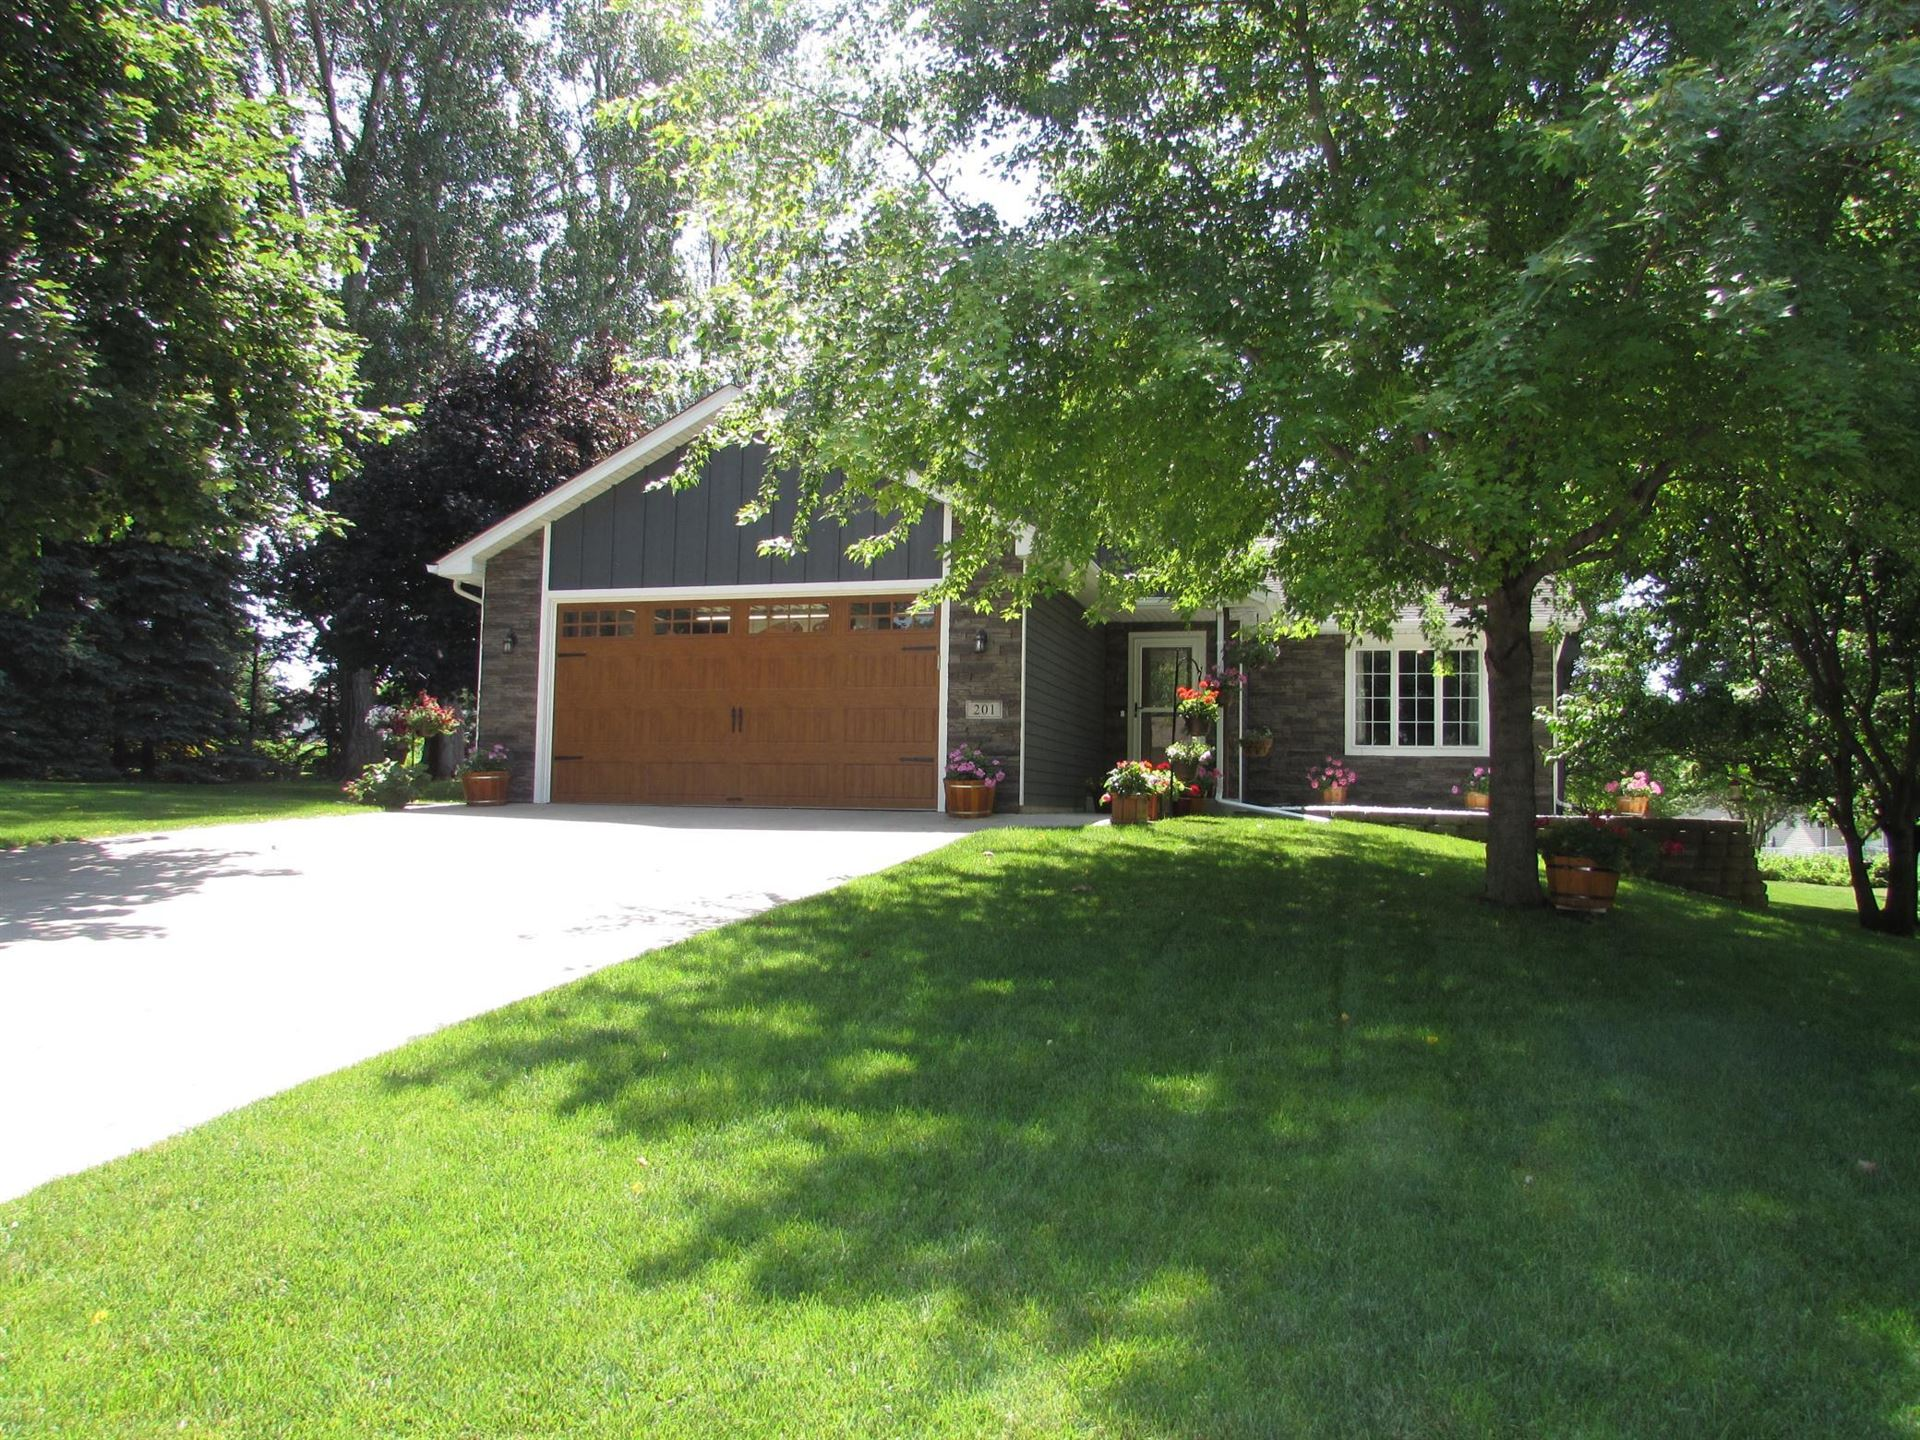 201 8th Street NW, Maple Lake, MN 55358 - #: 5621180